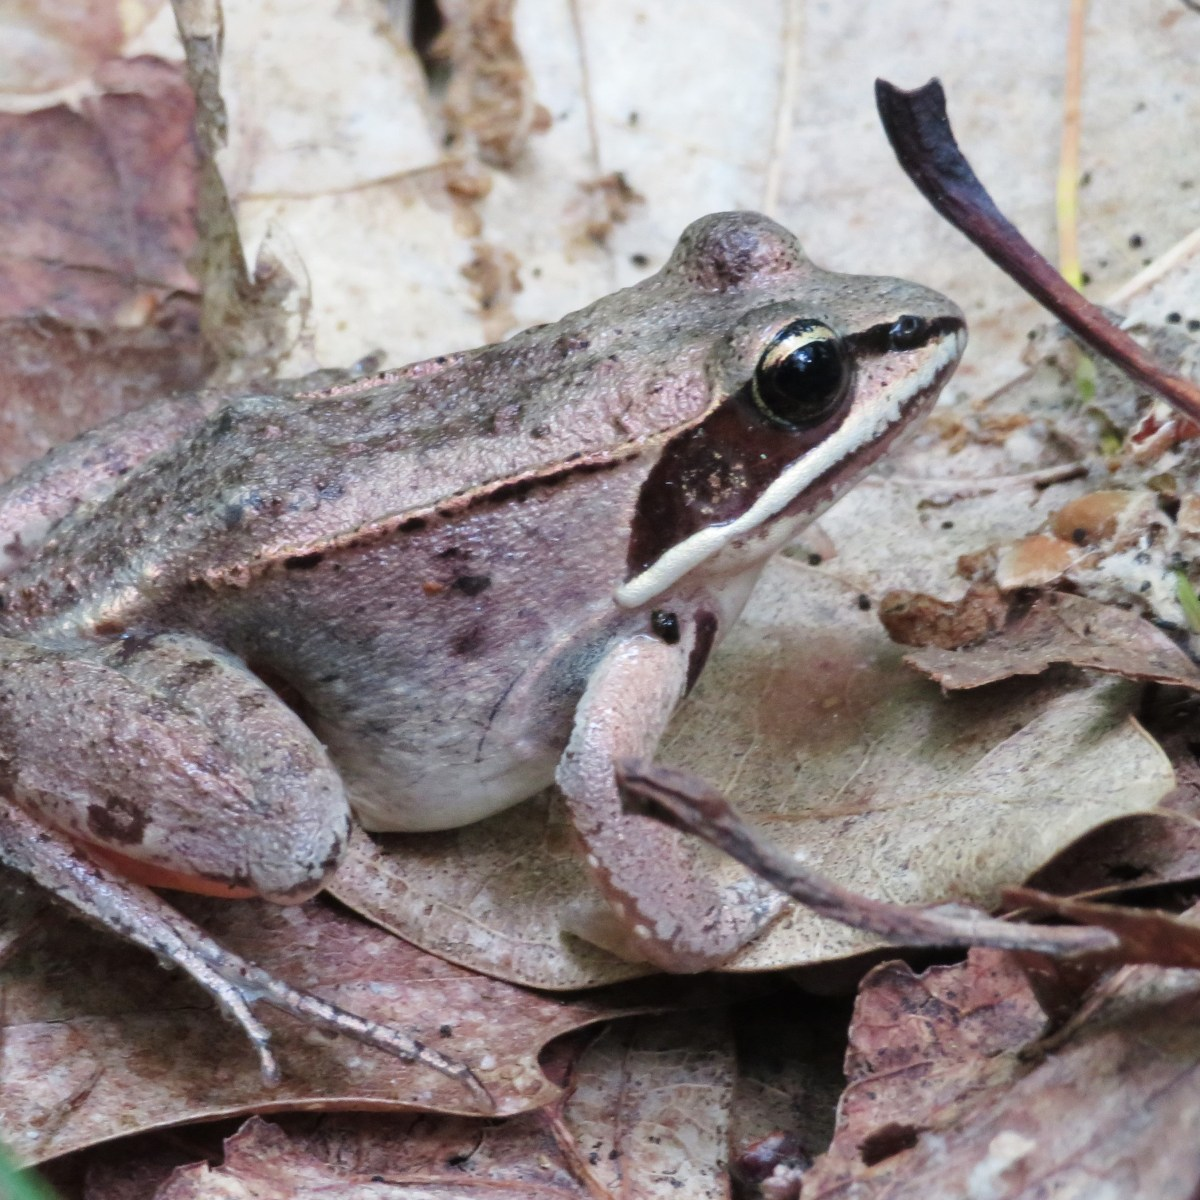 A wood frog with robber's mask